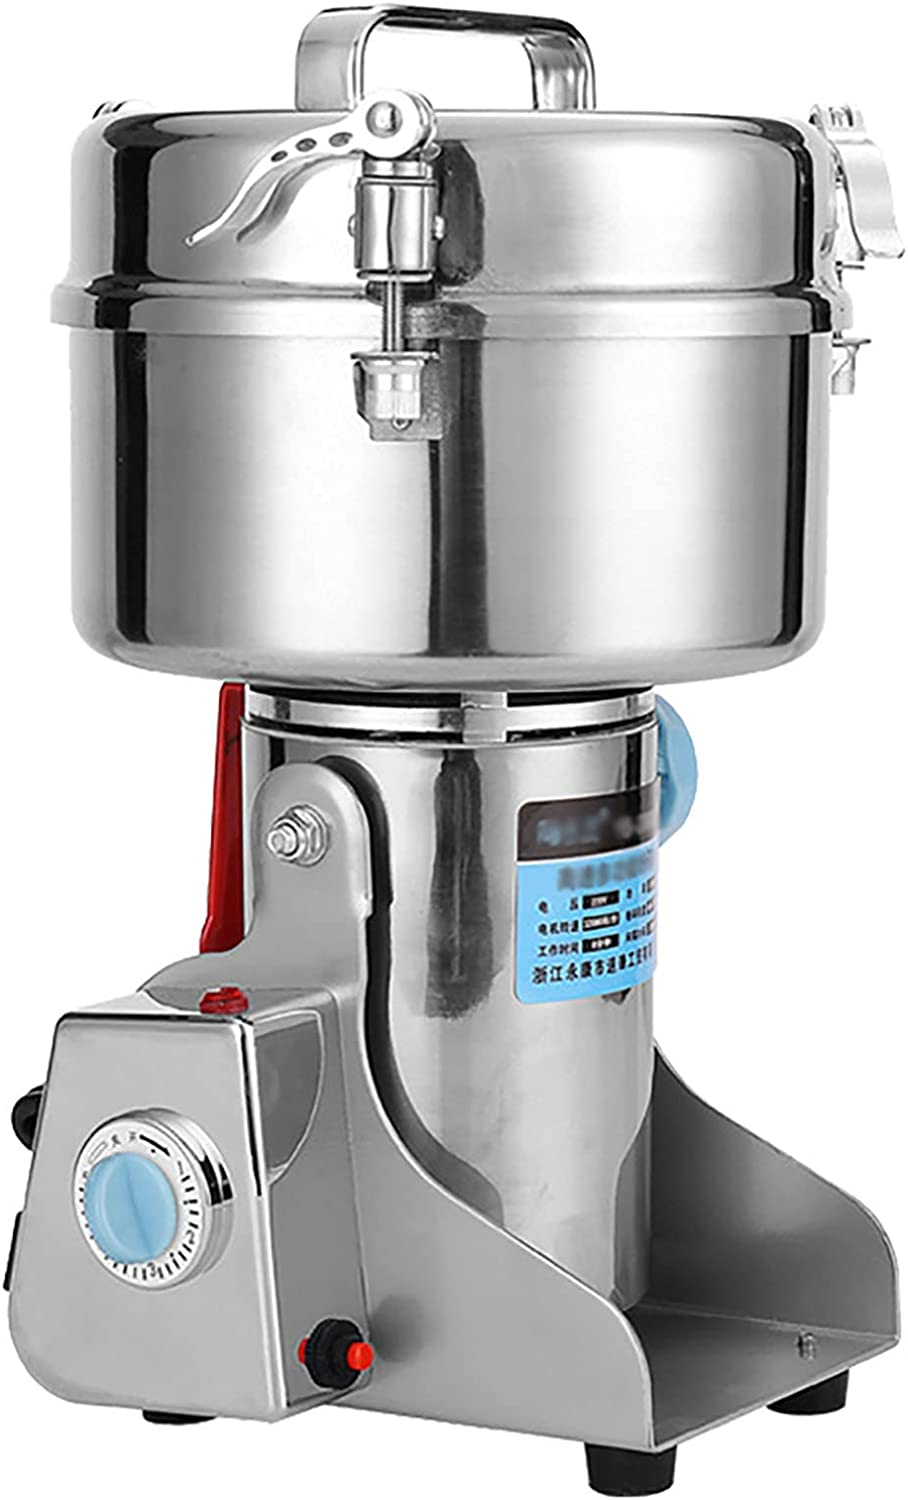 CLIng Free shipping New 2000g Electric Grain Mill High New products, world's highest quality popular! Speed St Grinder Pulverizer